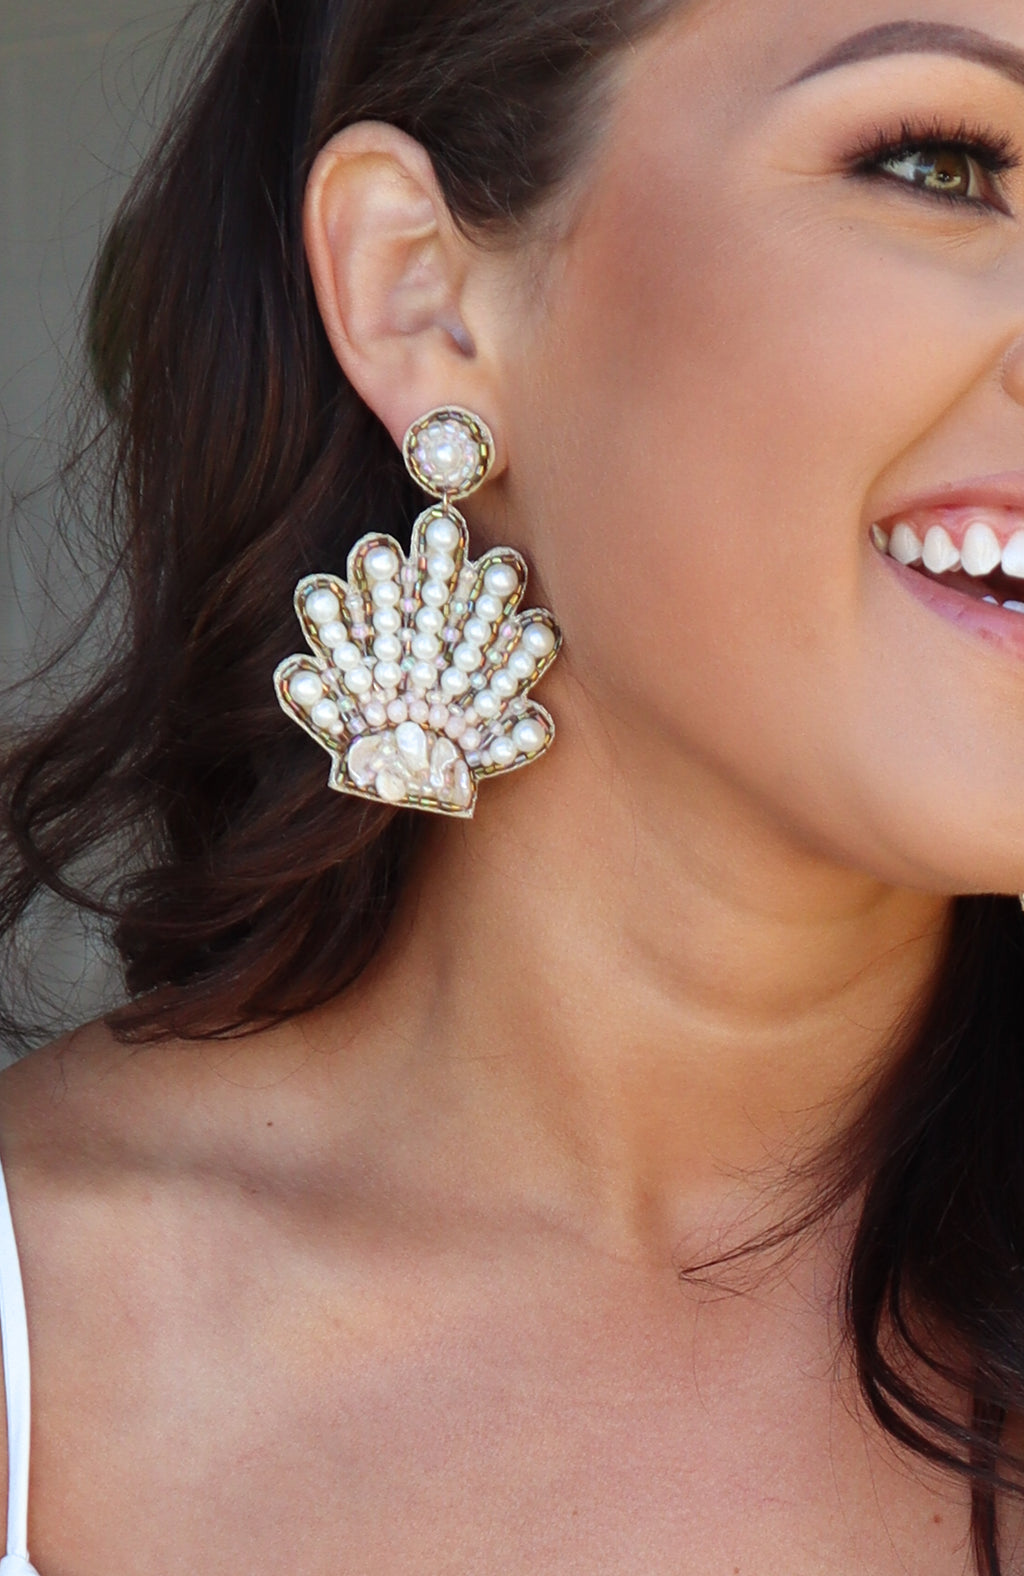 Shell Yeah Earring - Treasure Jewels